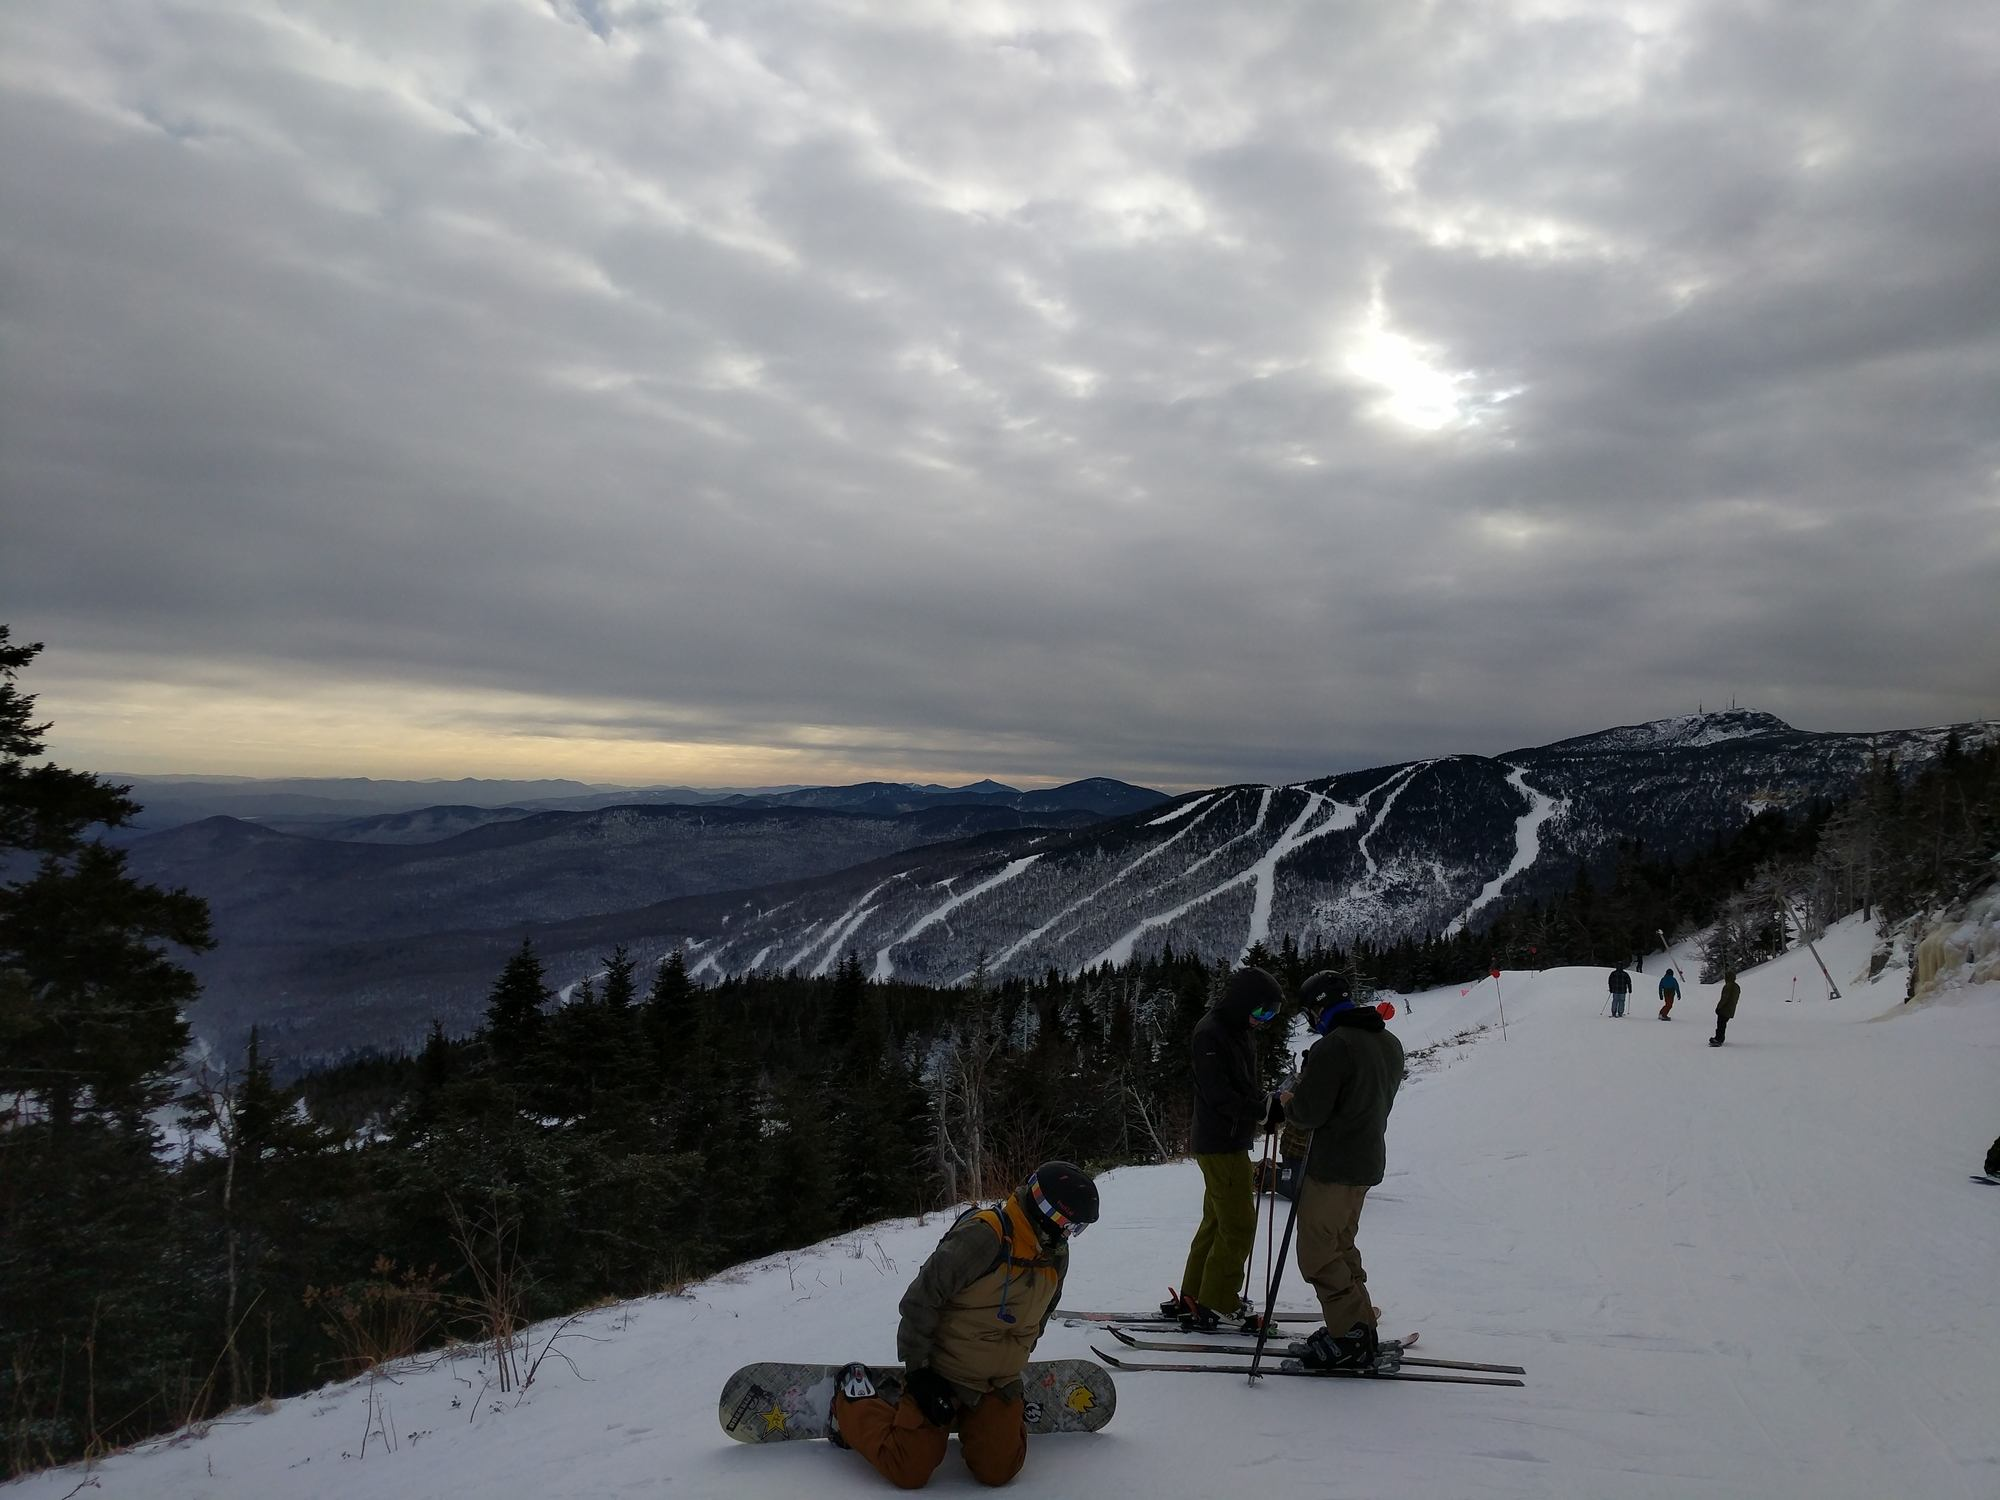 Stowe Mountain / Looking for some great East Coast ski slopes to learn to ski on? Read our list of the best New England ski resorts that are perfect for beginners.